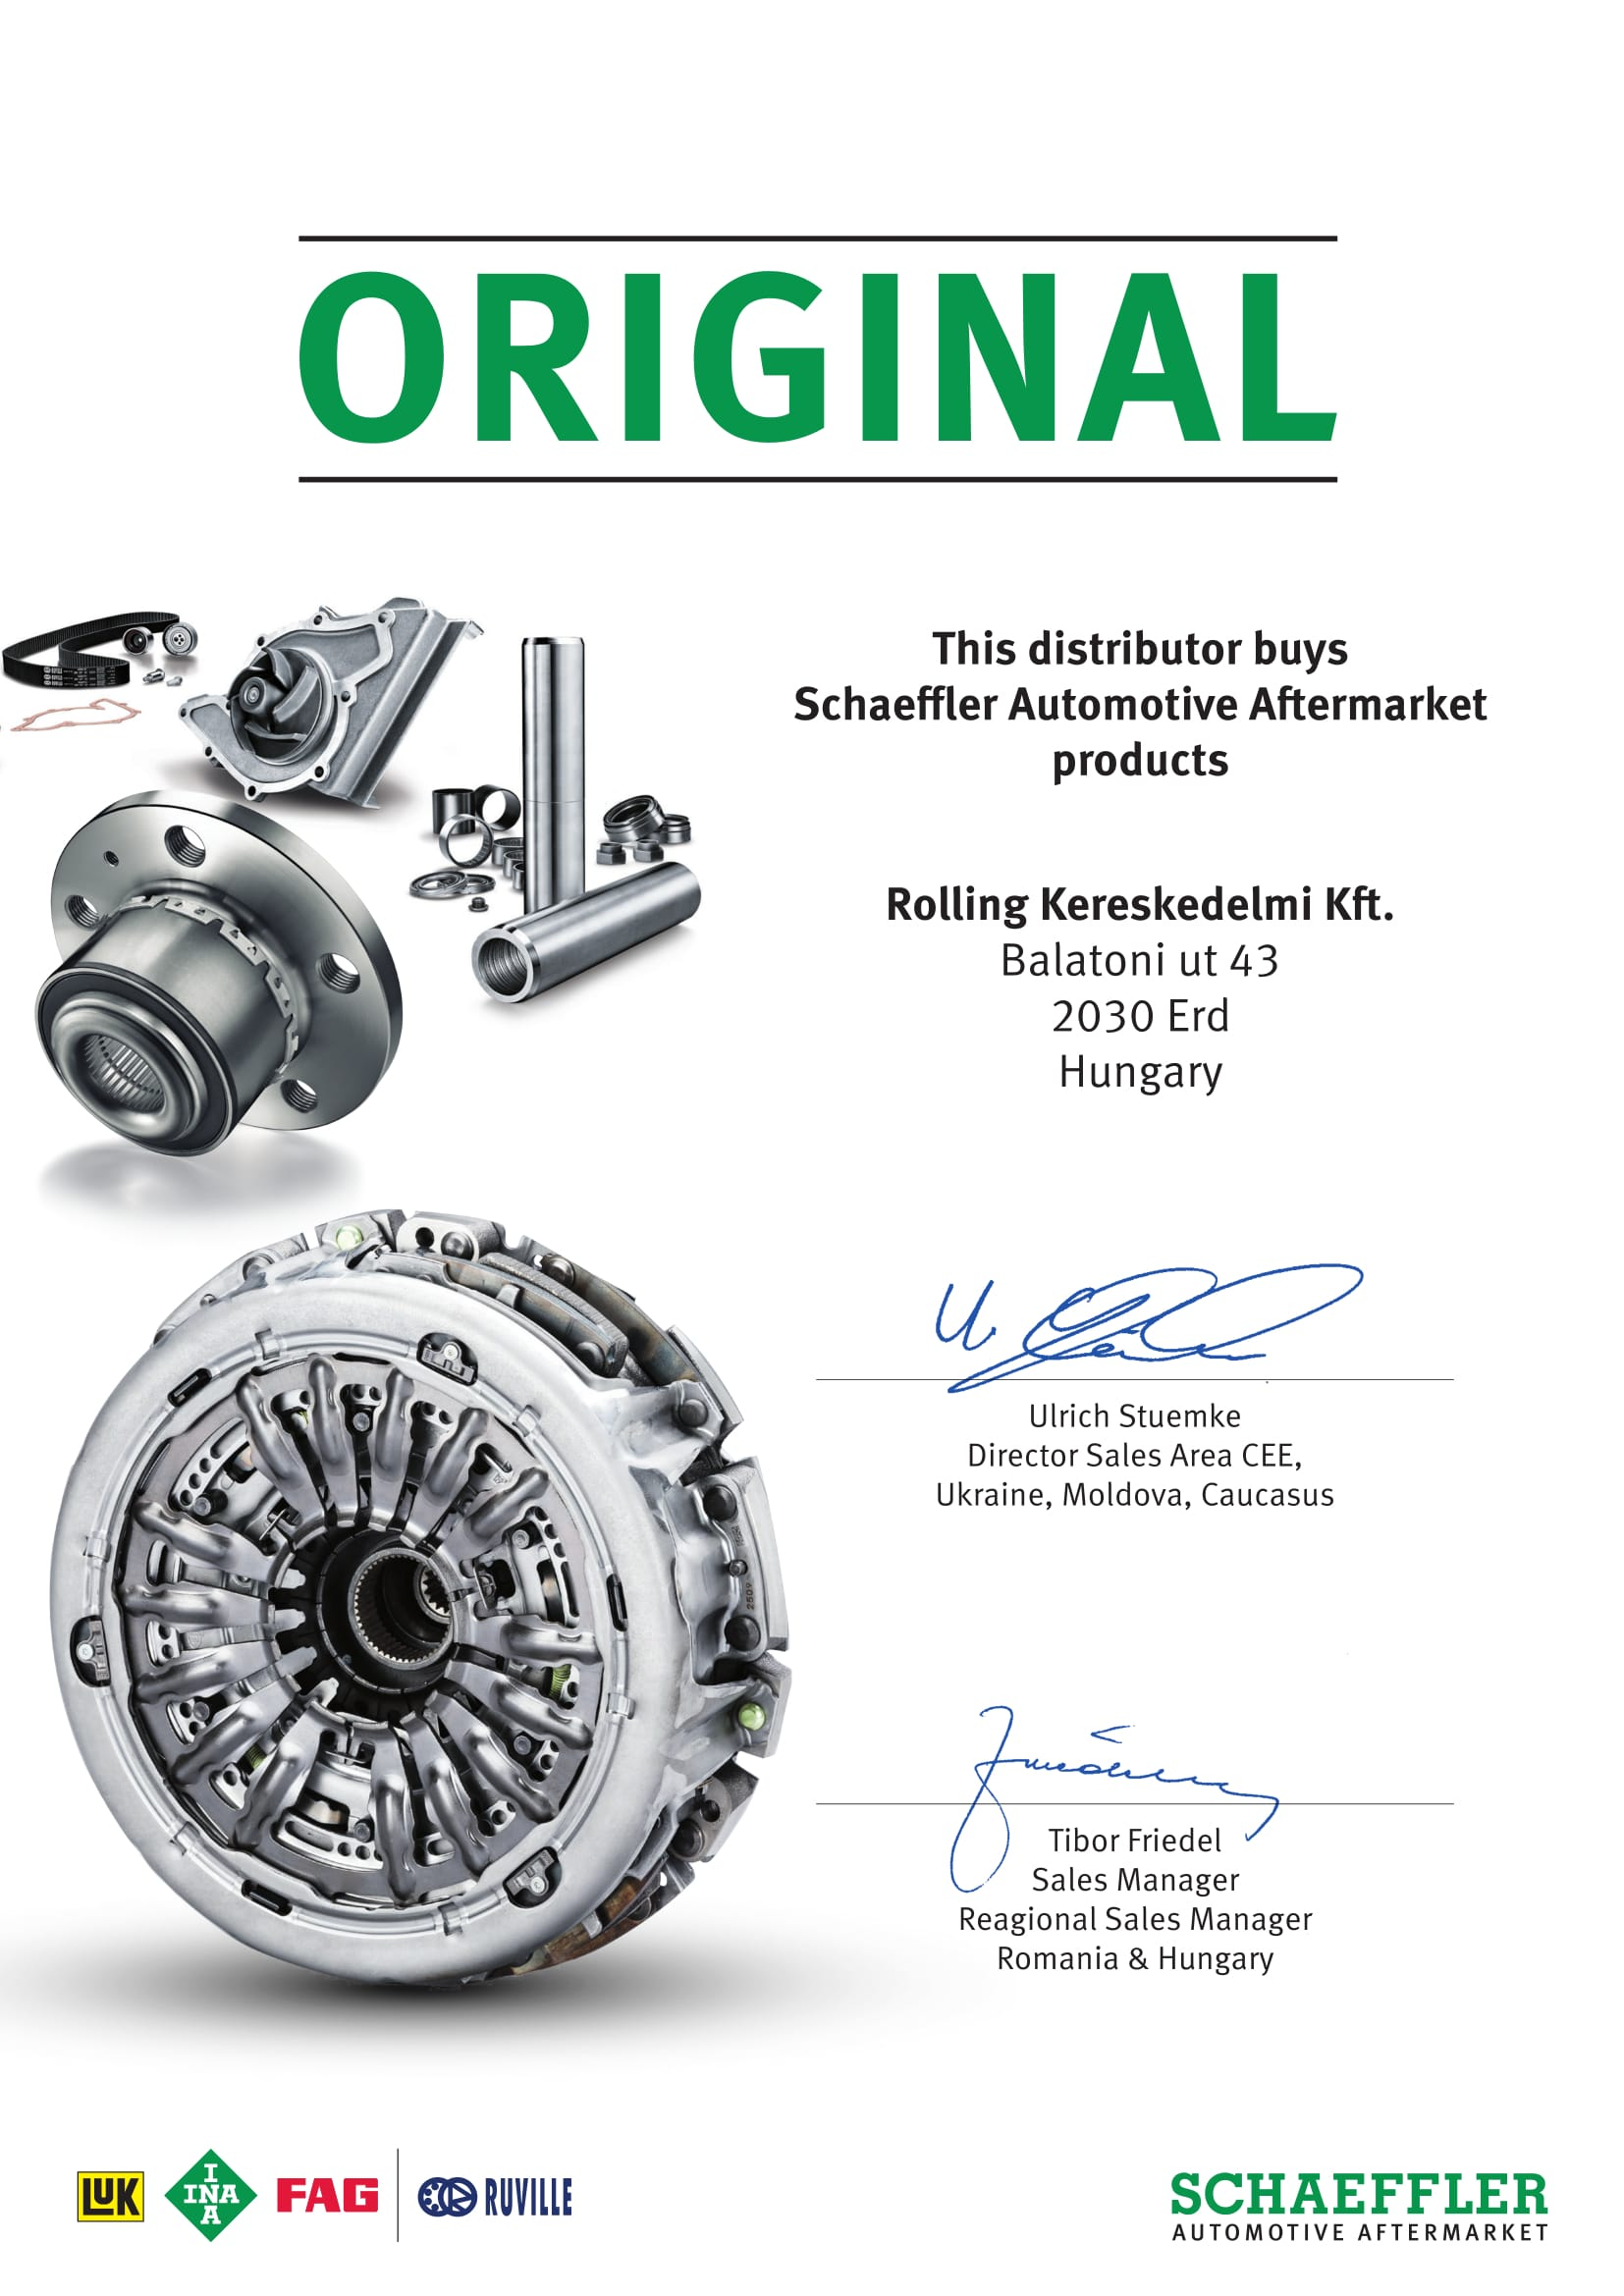 Schaeffler Automotive Aftermarket Distributor Certification